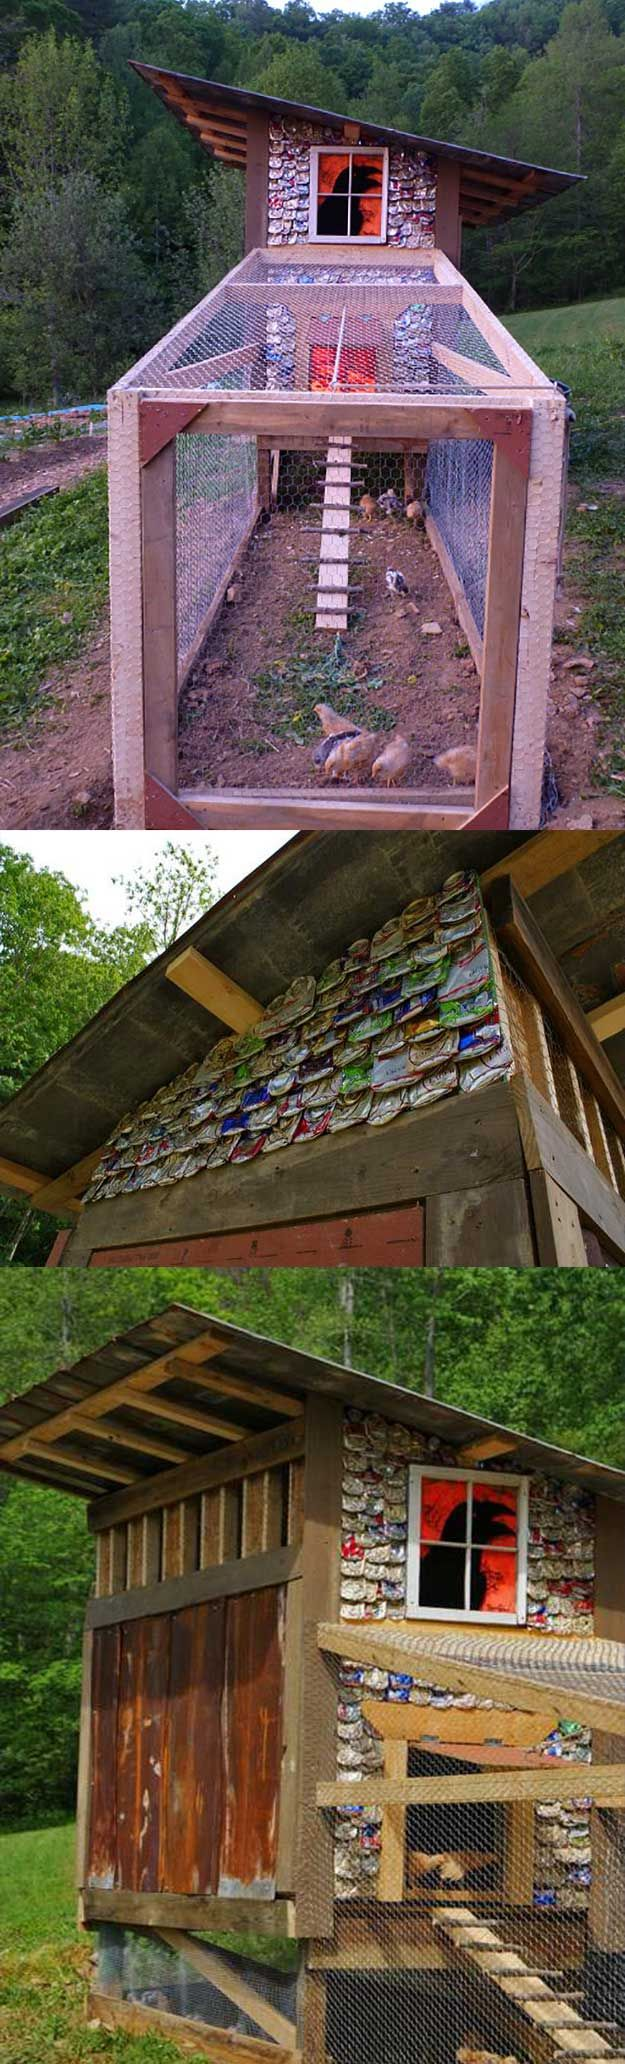 DIY chicken coop Crushed cans for siding!! I love it!!!